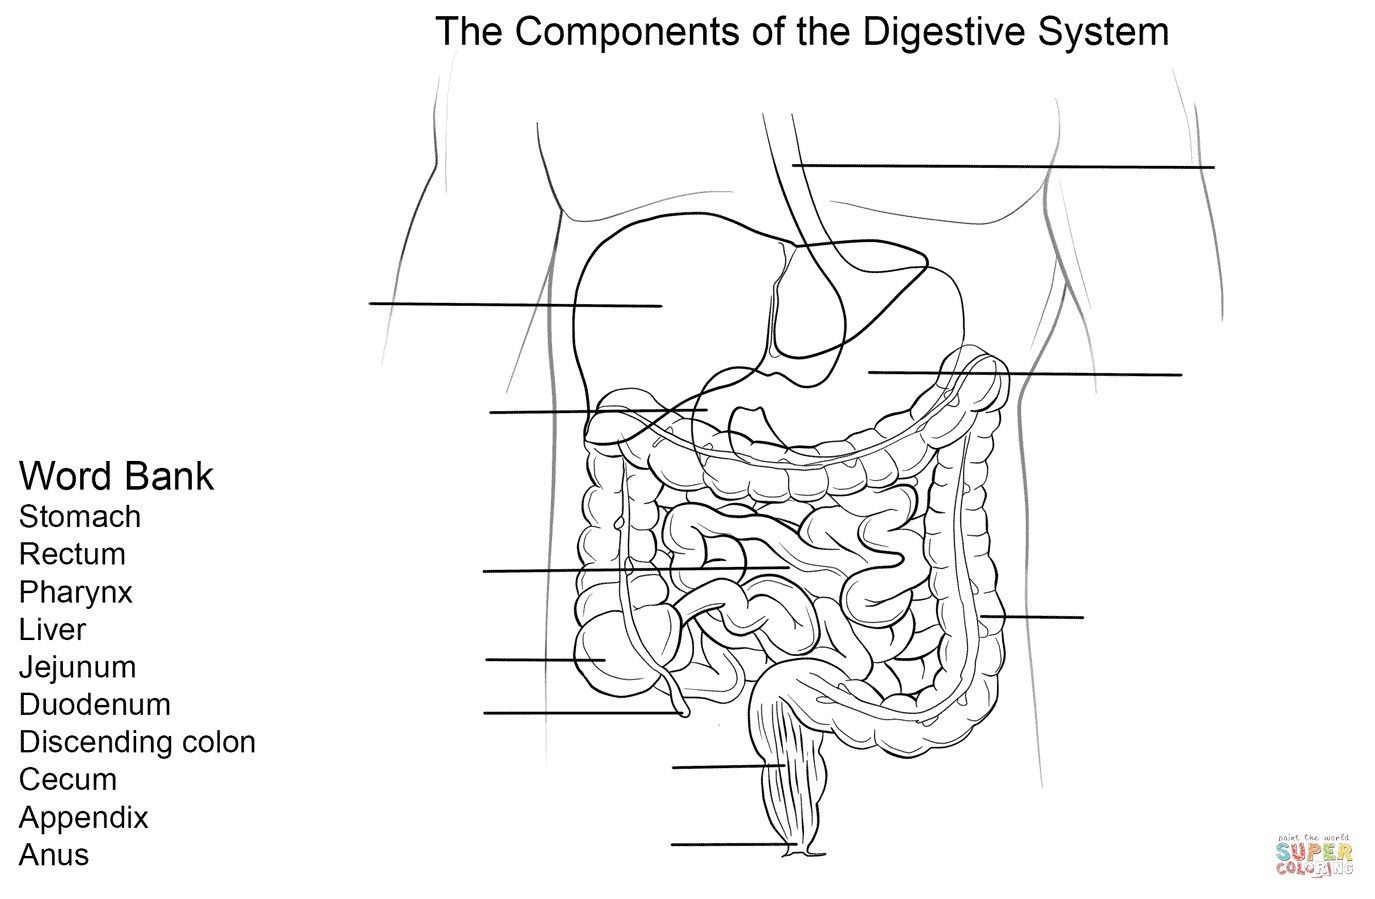 Digestive System Worksheets Middle School Digestive System Diagram to Label